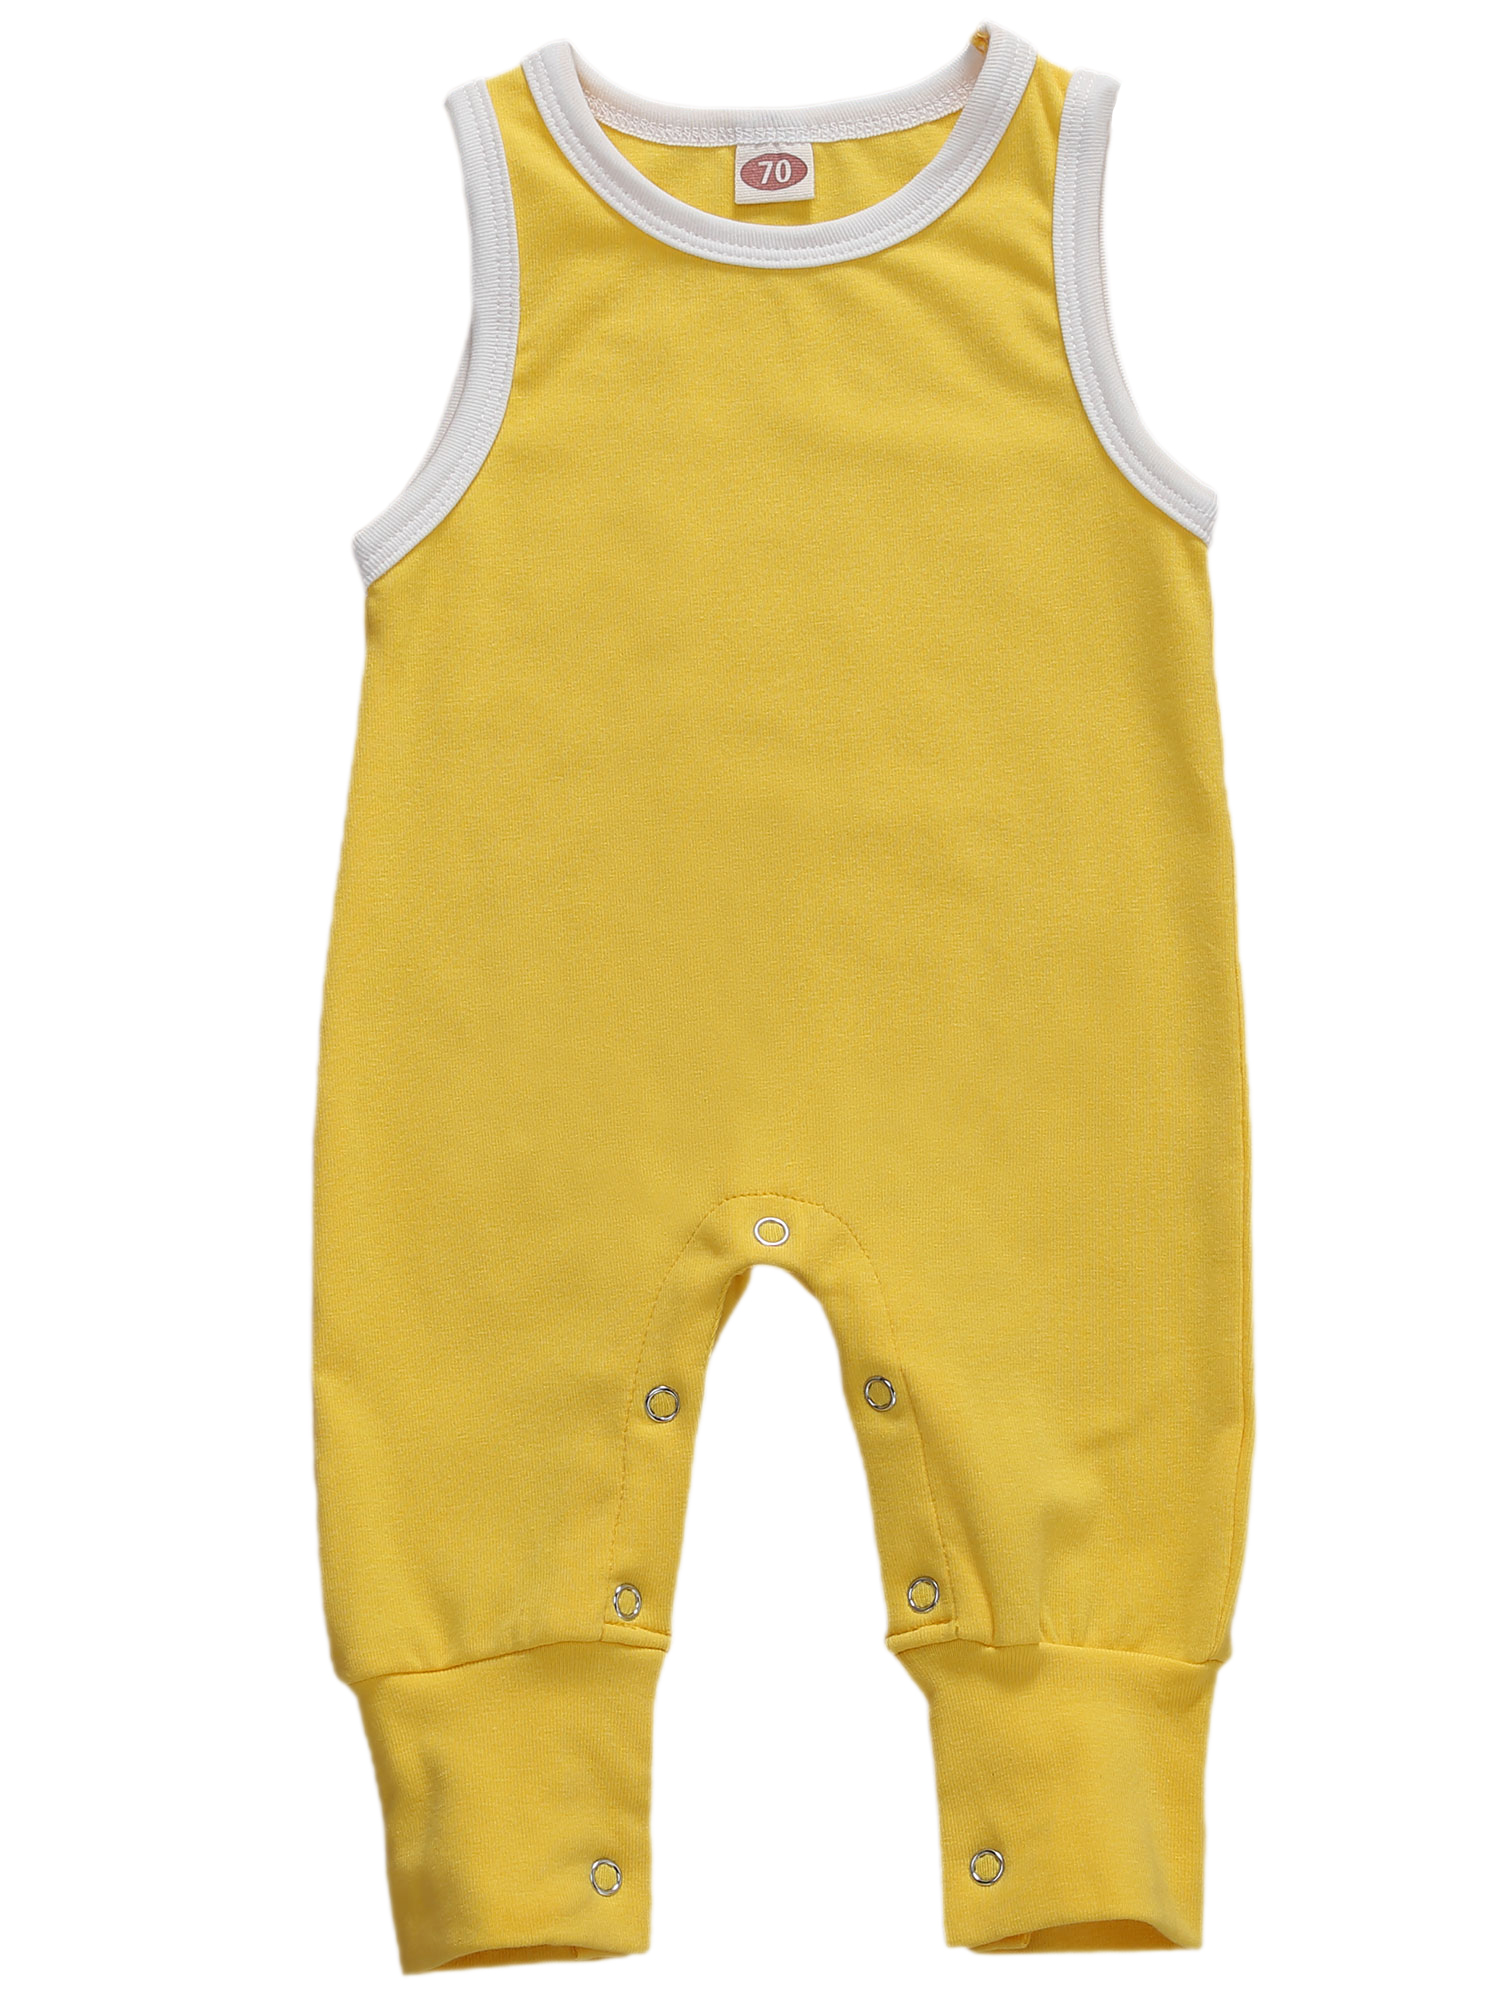 Infant Baby Girls Toddler Sleeveless Summer Strappy Jumpsuit Romper Outfits 0-18